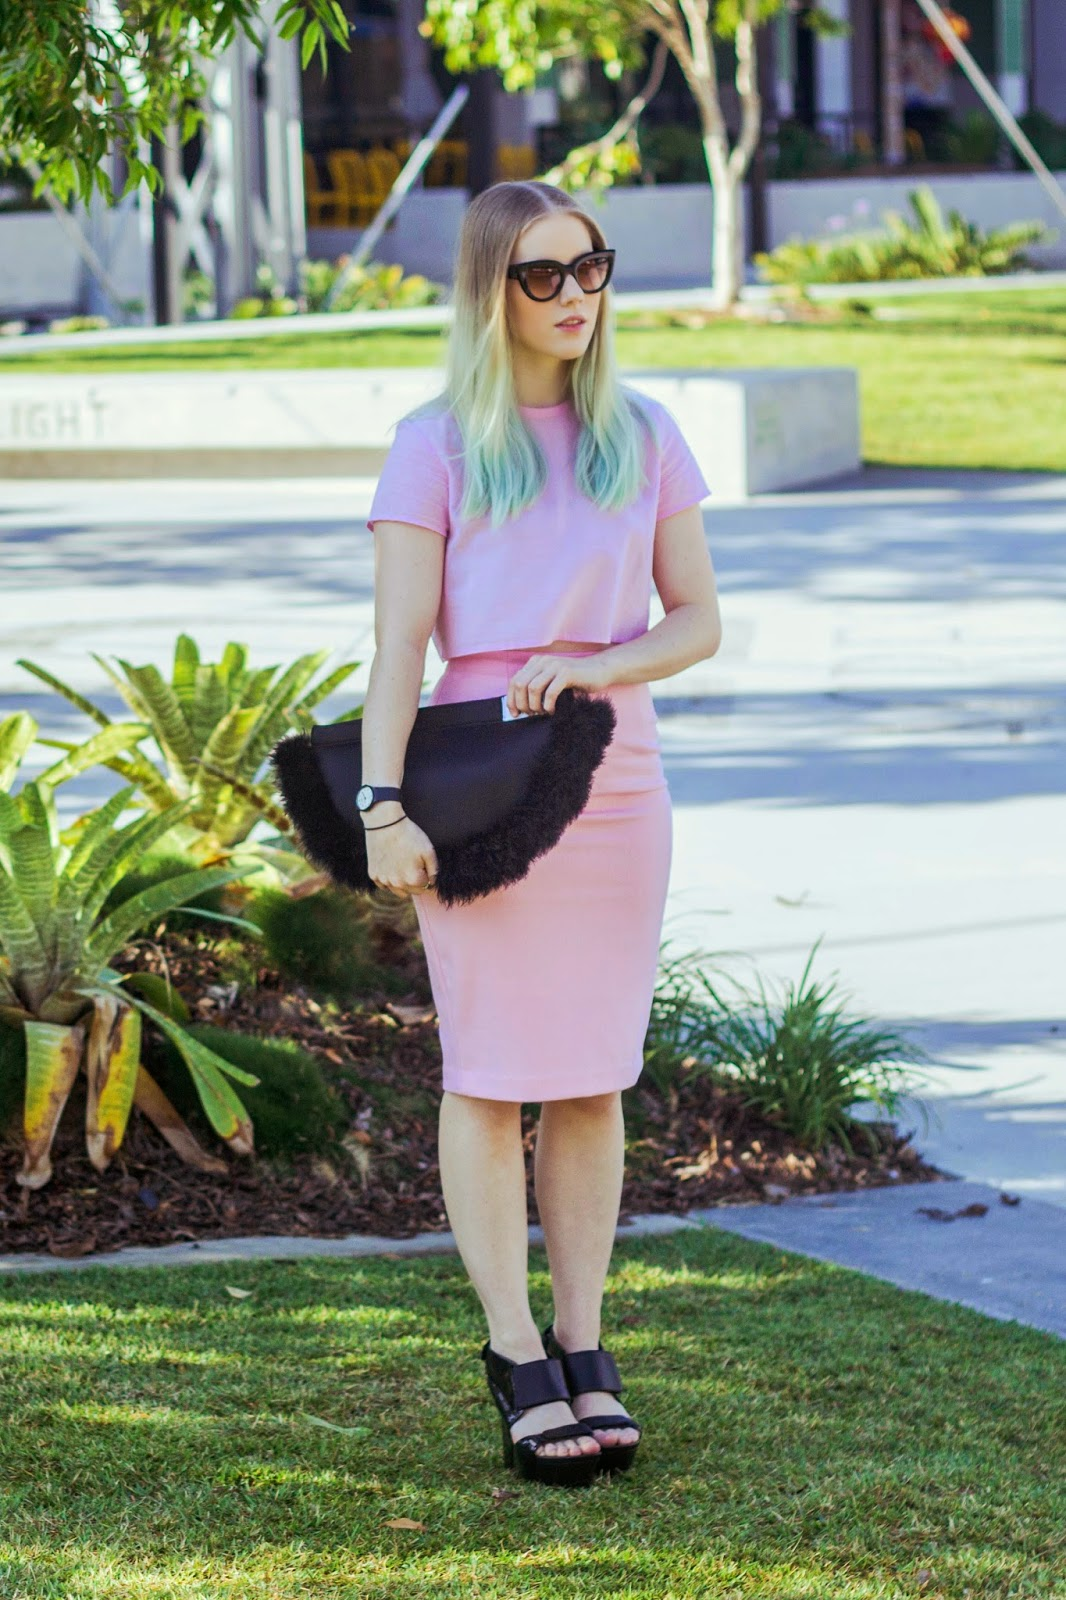 Pip O'Sullivan fashion blog, Philippa O'Sullivan, outsideiscolours, outside is colours, brisbane fashion blogger, ootd, all pink outfit, pale pink pencil skirt, pink midi skirt, girl wearing pink pencil skirt, pink wool skirt, Style nanda pink wool pencil skirt, 1989 the lablel, pink cropped t-shirt, pink crop tee, somewhere nowhere lunar clutch, marabou feather clutch, black neoprene clutch, united nude bolt heels,